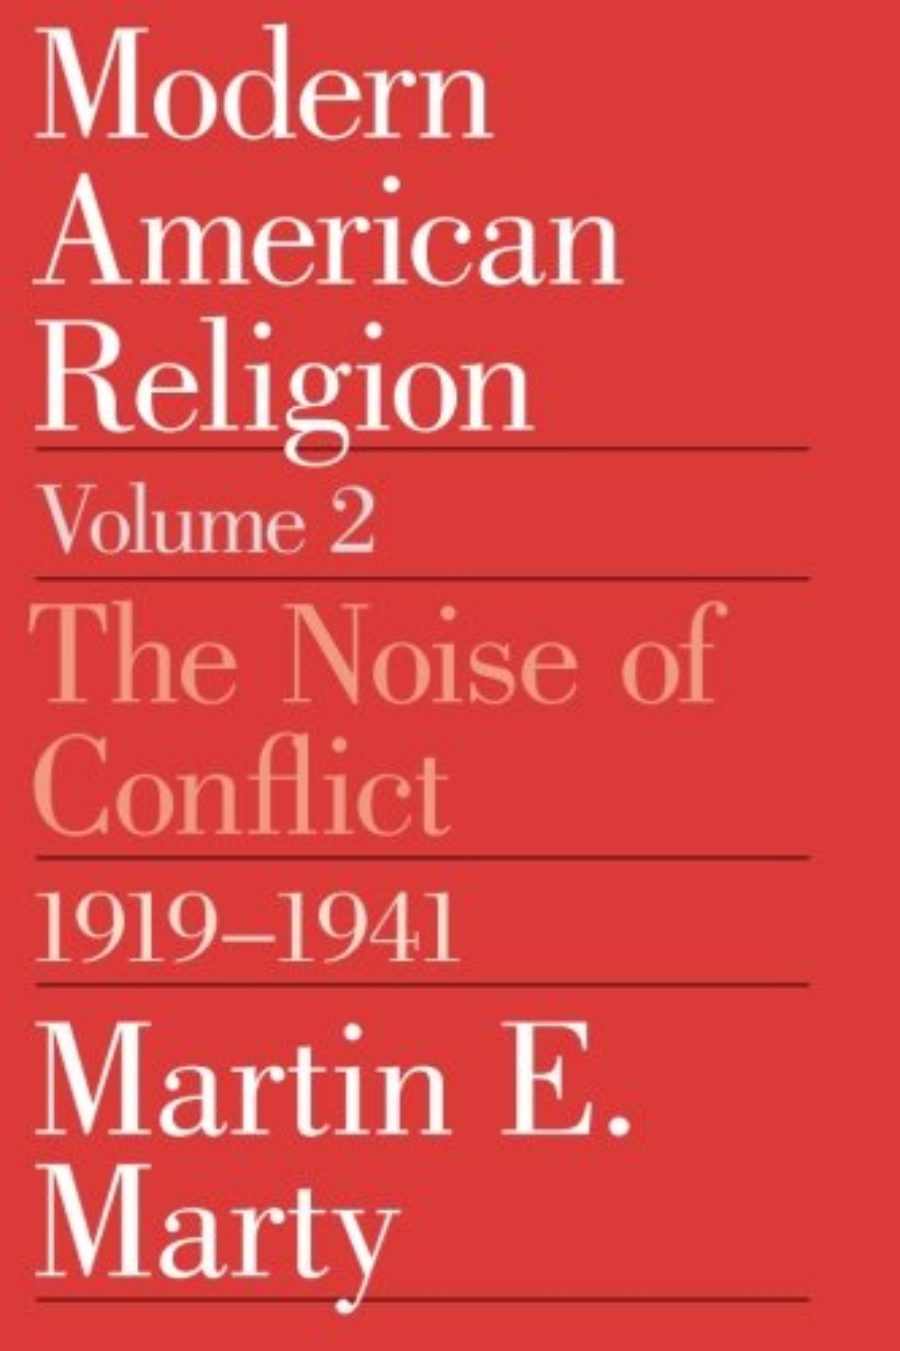 Cover of Modern American Religion, Volume 2: The Noise of Conflict, 1919-1941